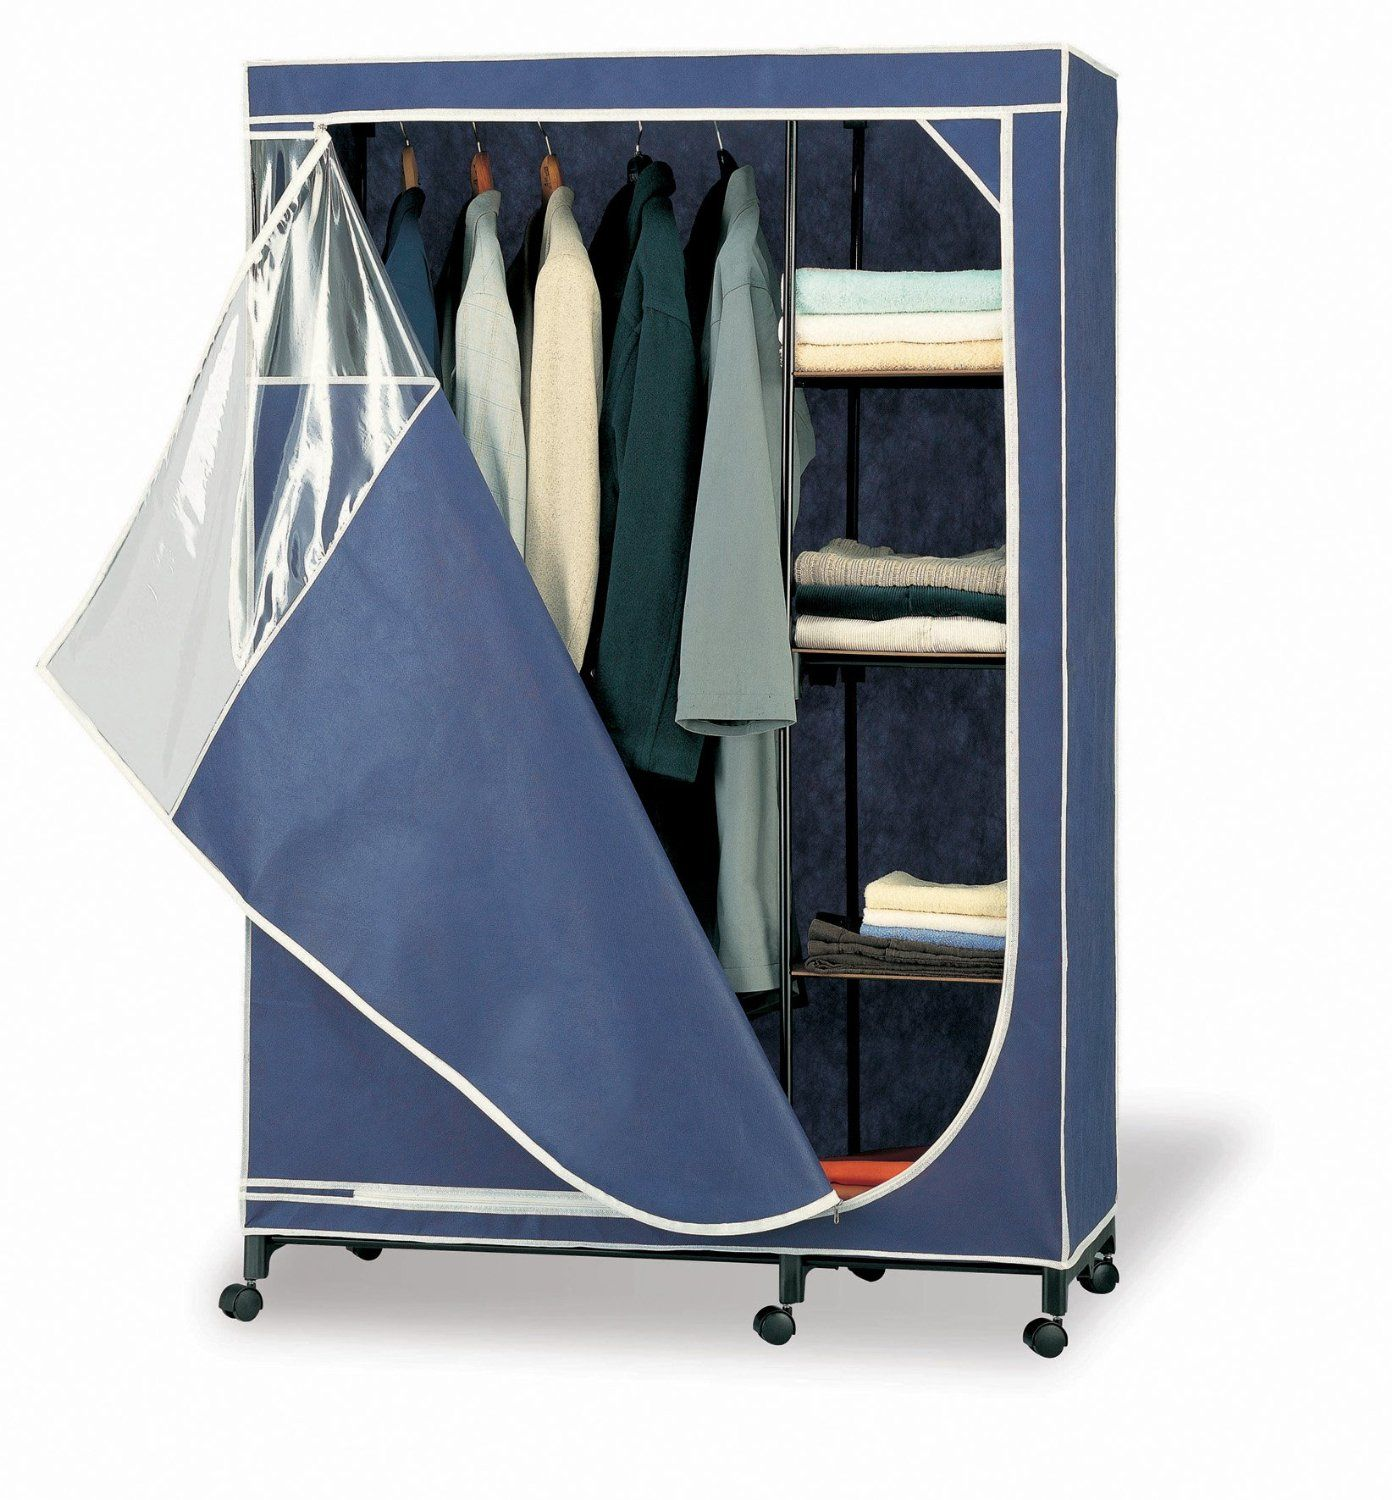 For Portable Storage And Organization Of Your Off Season Clothing, This  Rolling Storage Armoire Fits The Bill. This Wardrobe With Zippered Door  Holds Lots ...